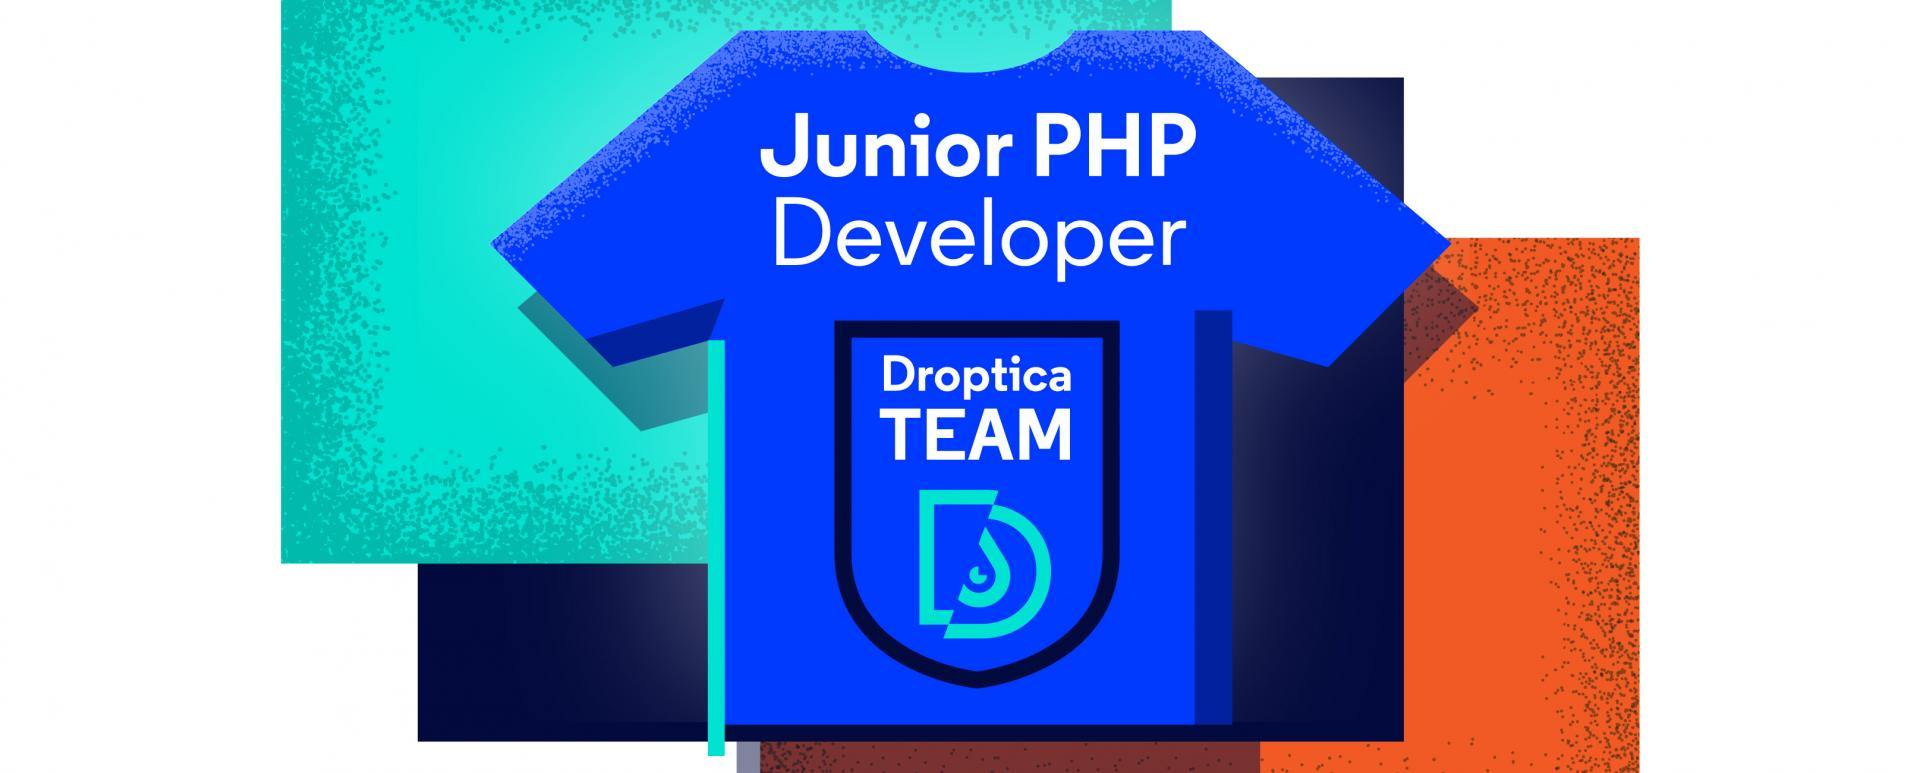 "a blu t-shirt with ""junior PHP"" and Roptica logo printed on it. at the background, three squares, colored orange, black and teal are visible."